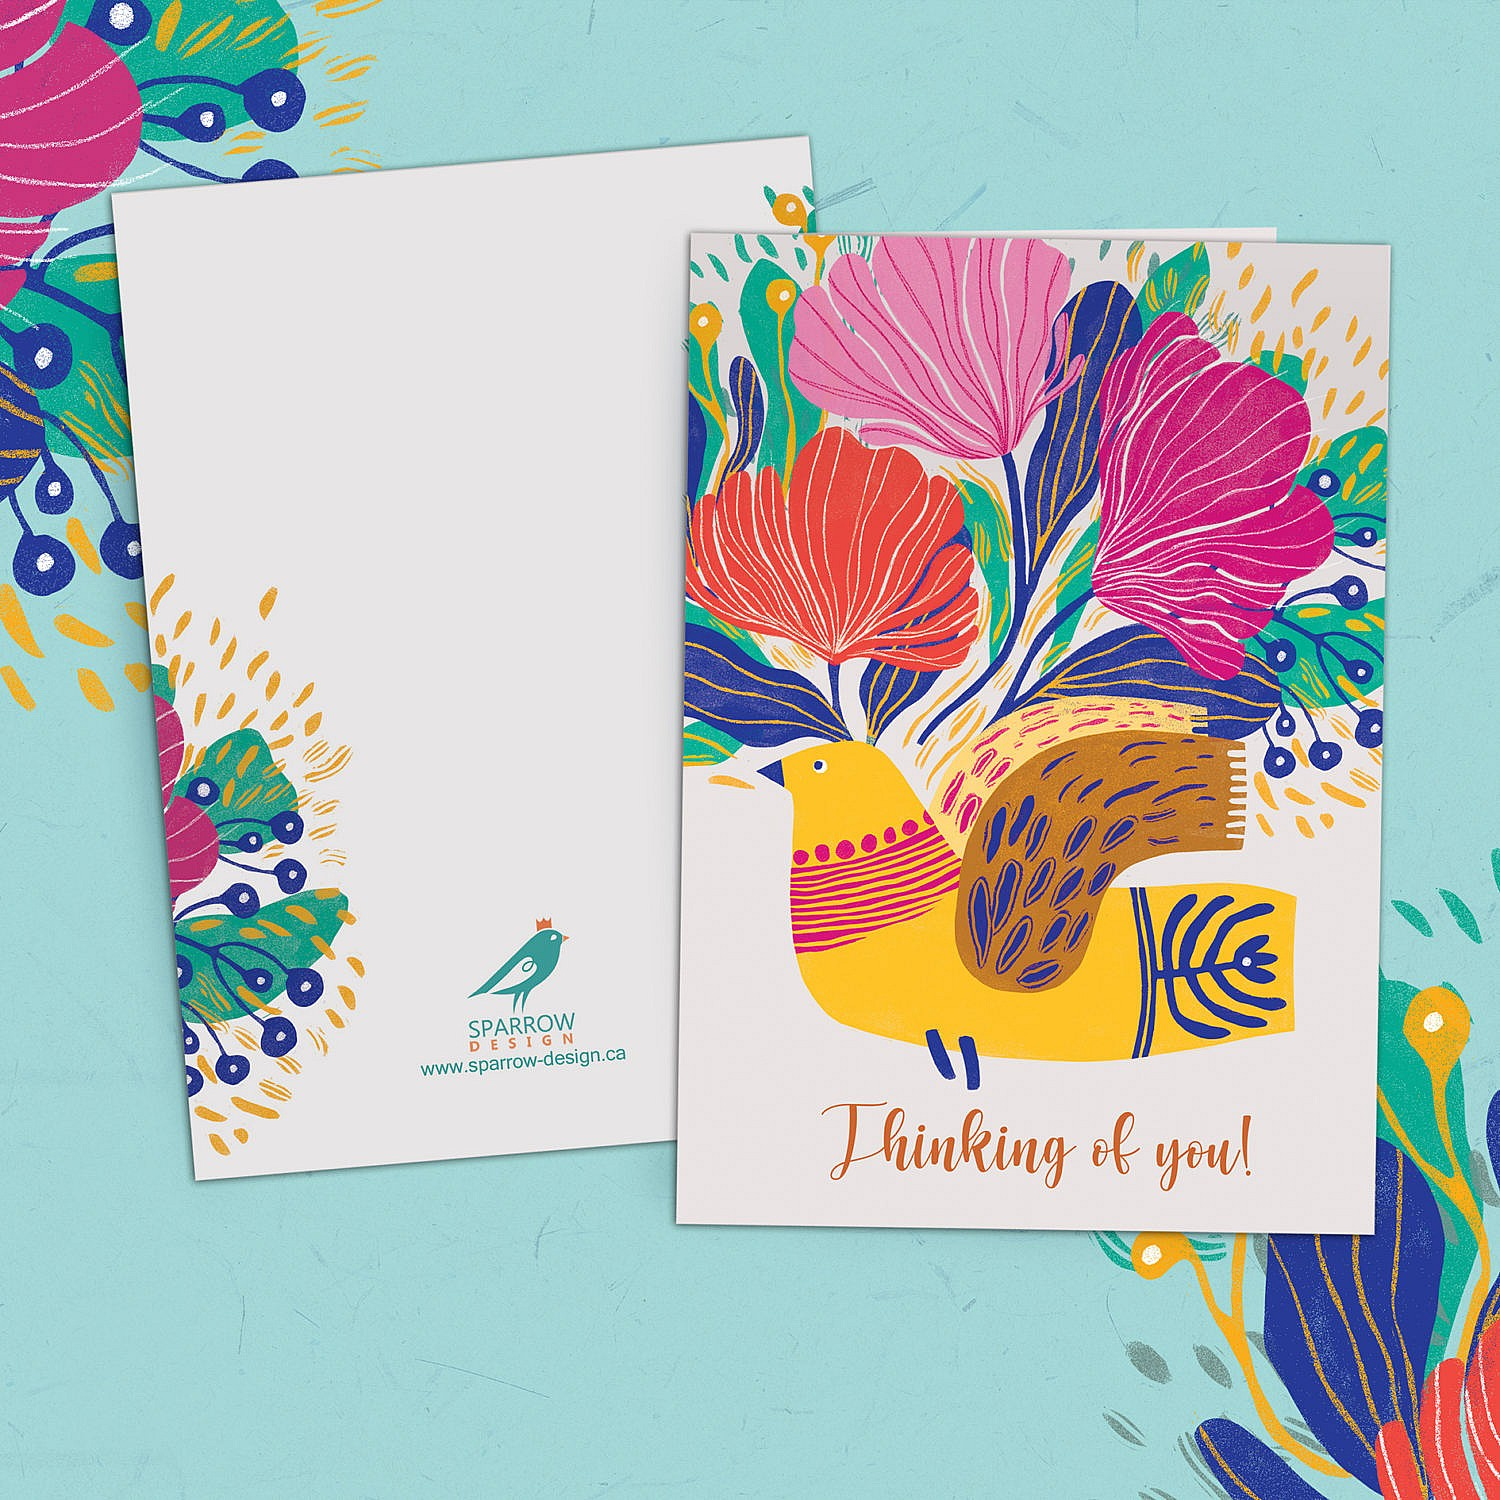 A floral greeting card that reads thinking of you. The flowers are red, dark pink and light pink. There is a yellow bird in the middle.